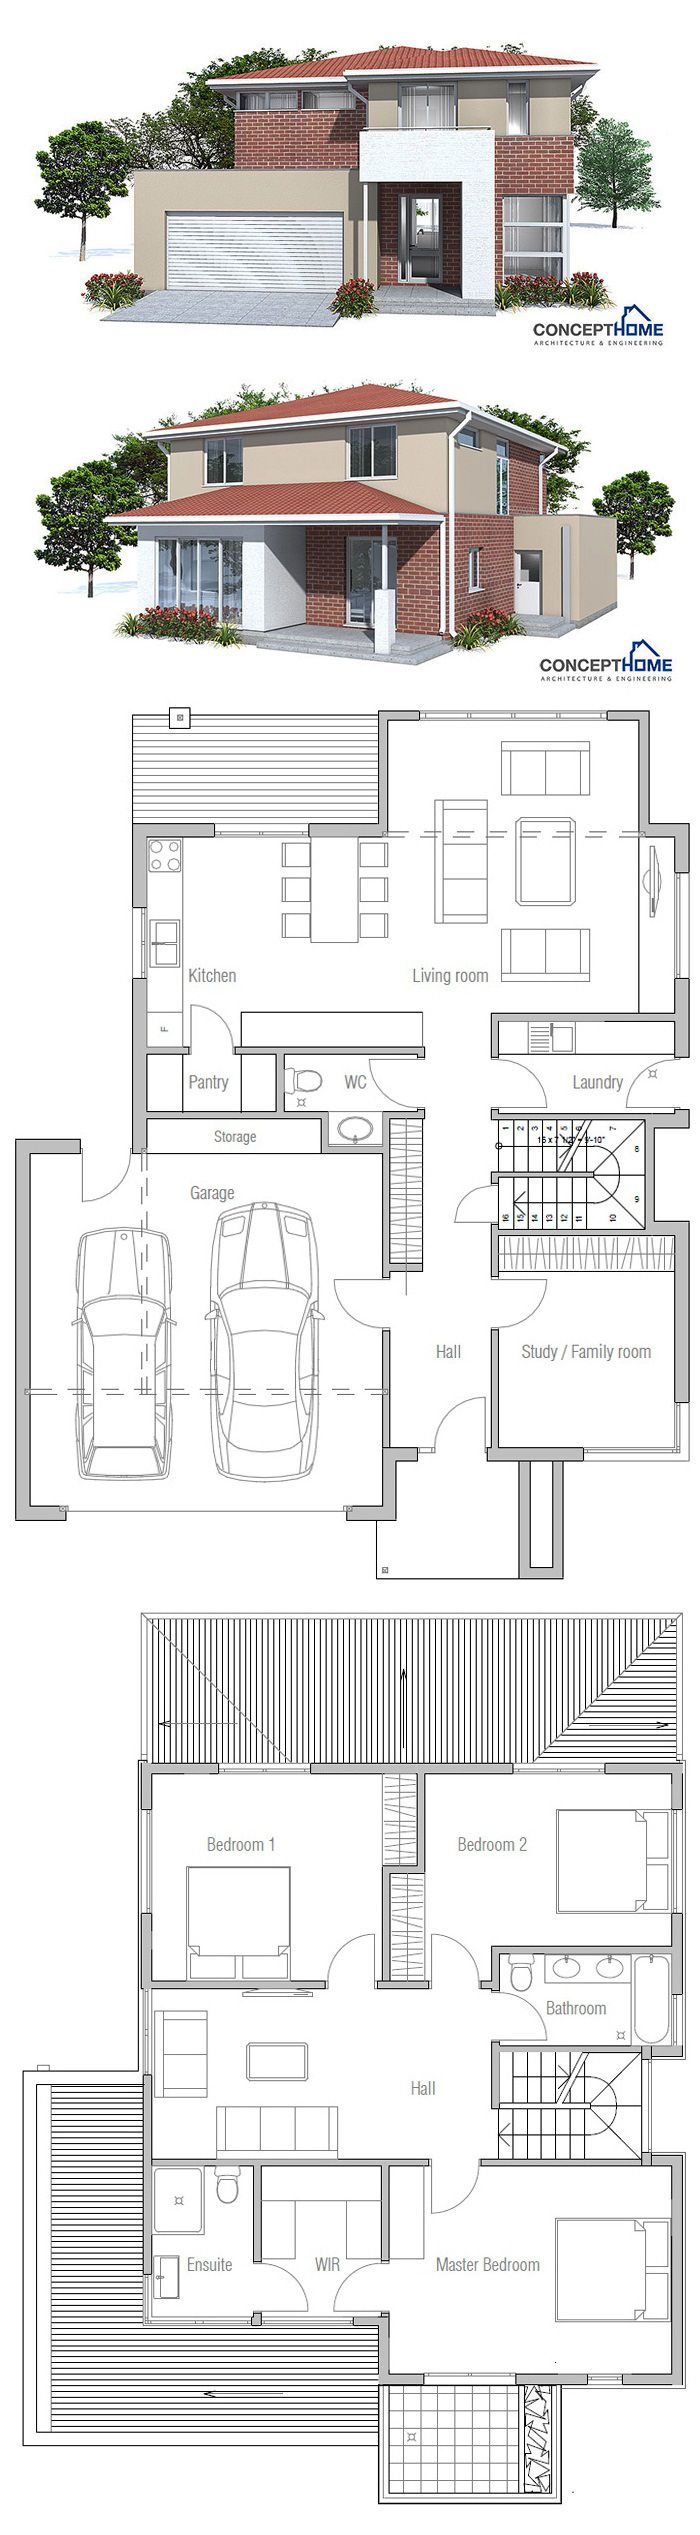 enlarge ensuite to include bath, move door & have robe behind bed. increase lower back to fit island bench & dining table